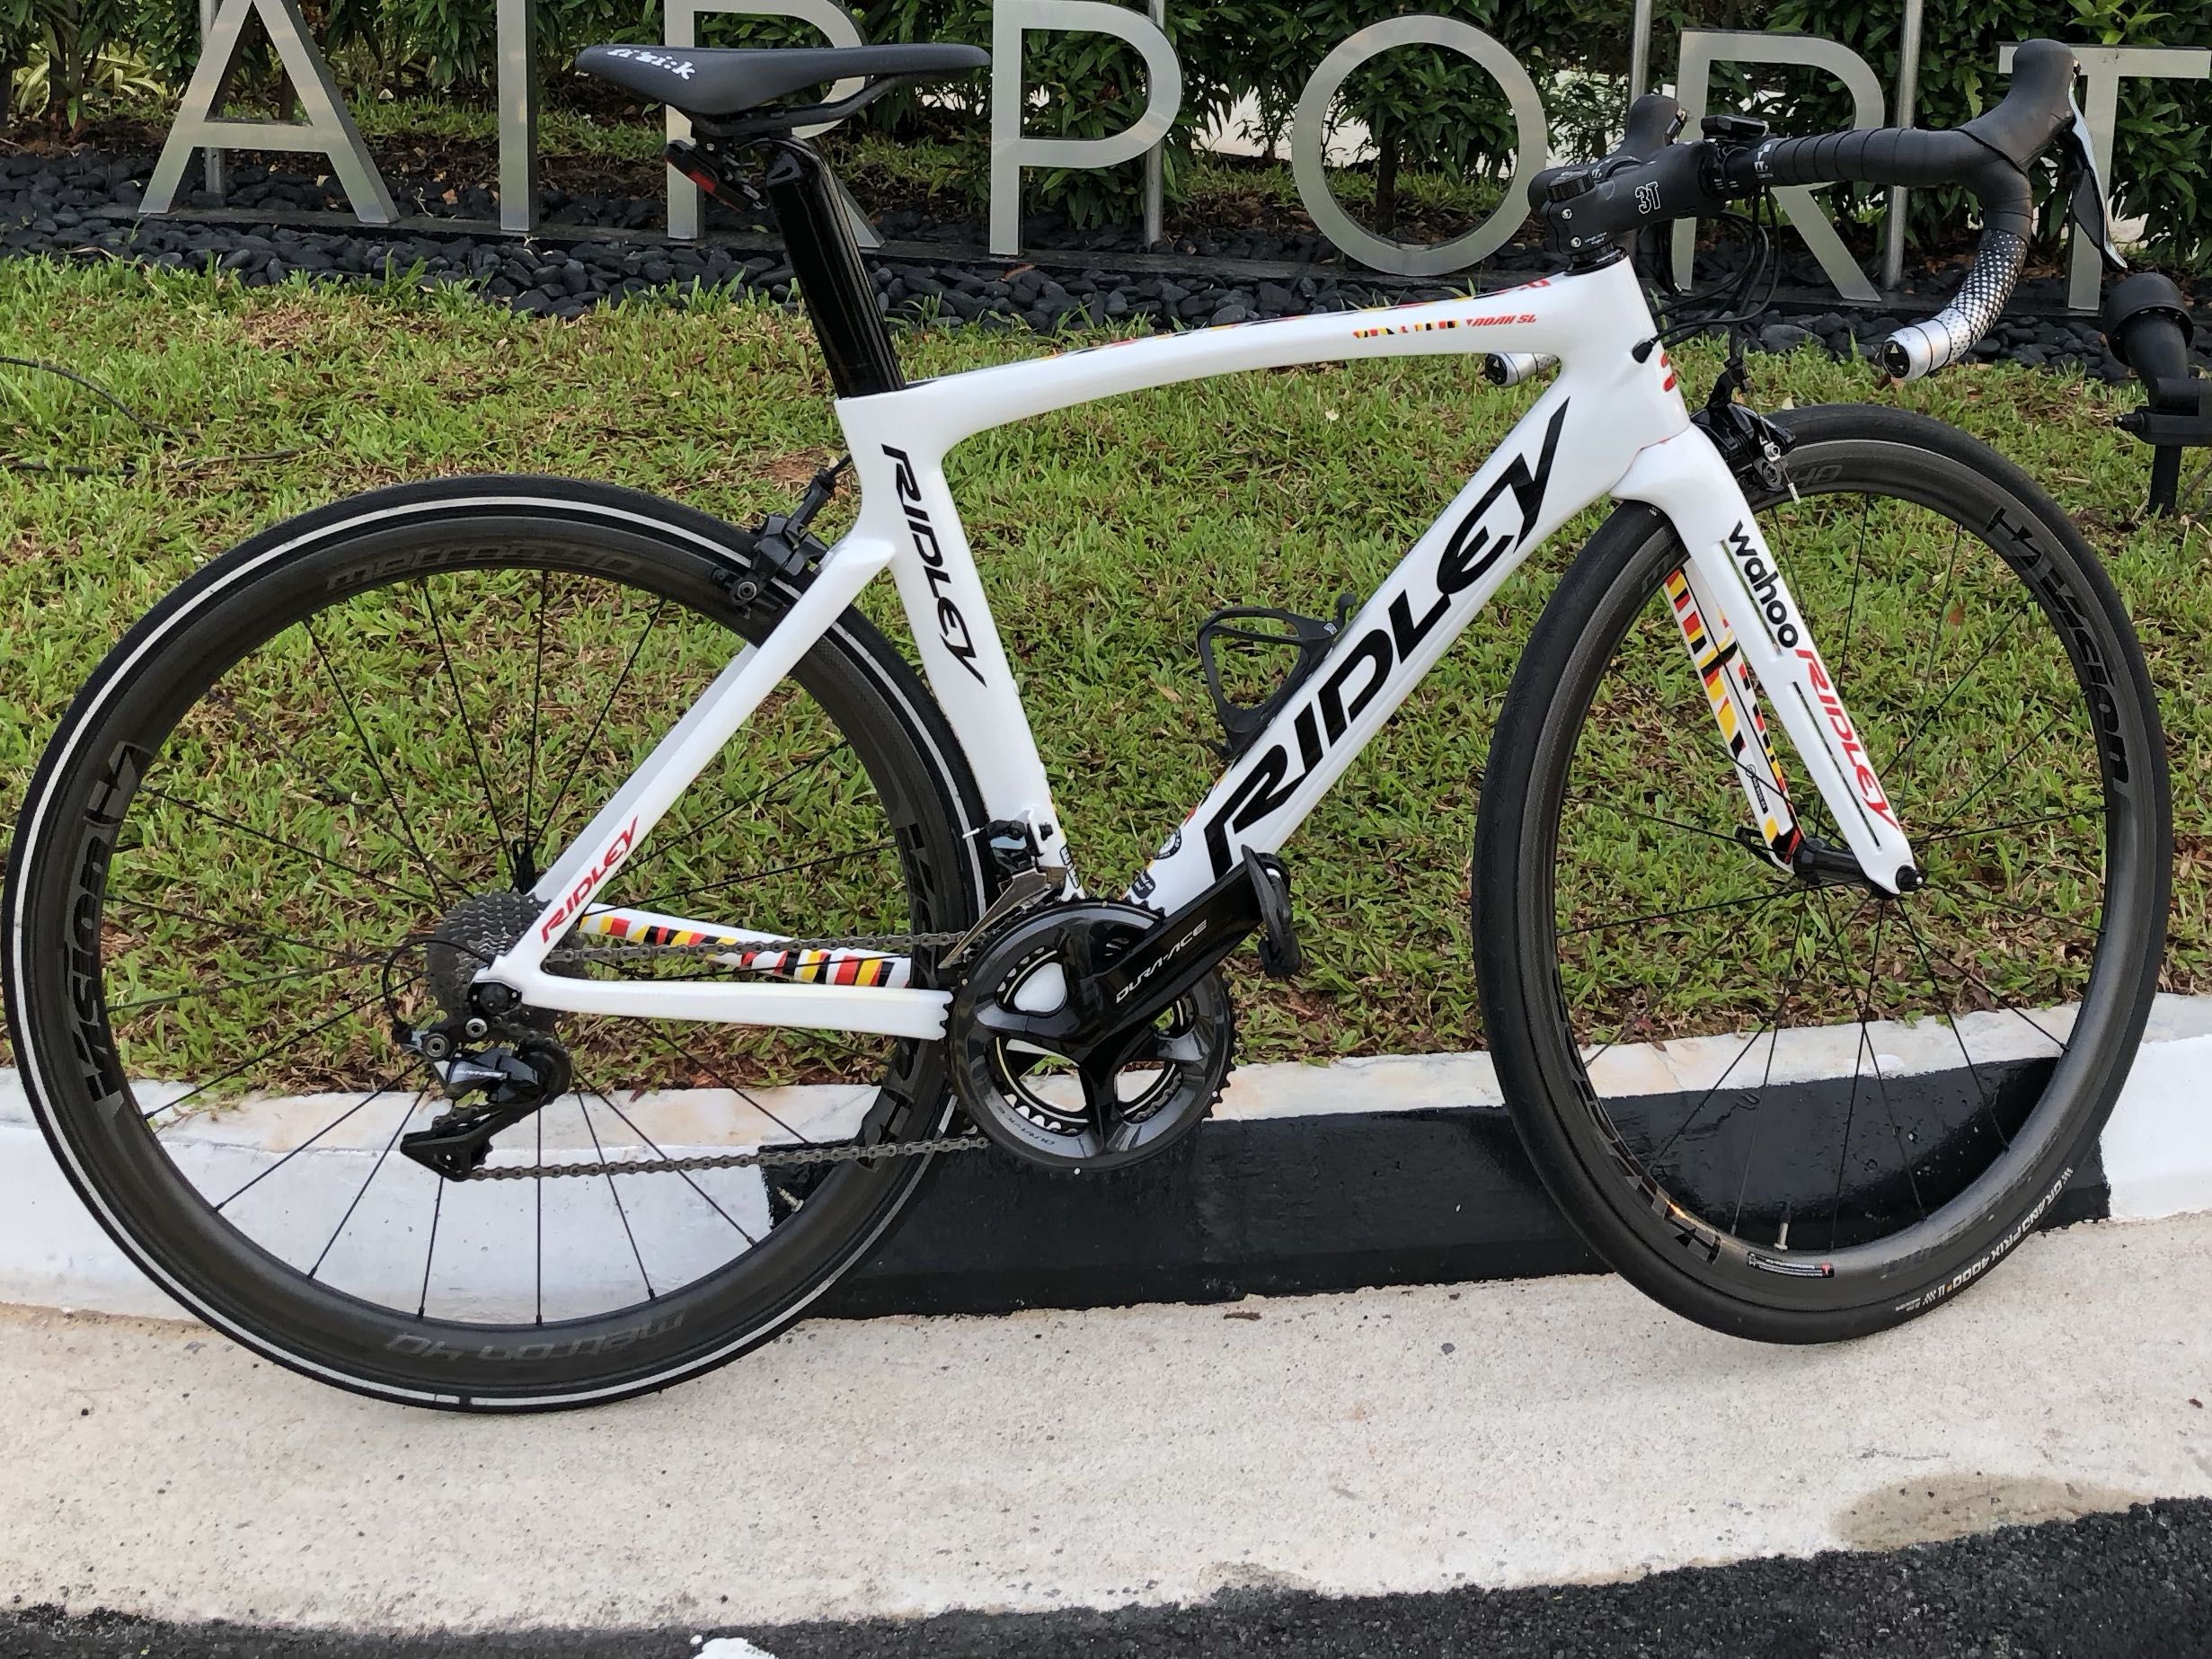 bc8548d1be6 Ridley Noah SL, Bicycles & PMDs, Bicycles, Road Bikes on Carousell